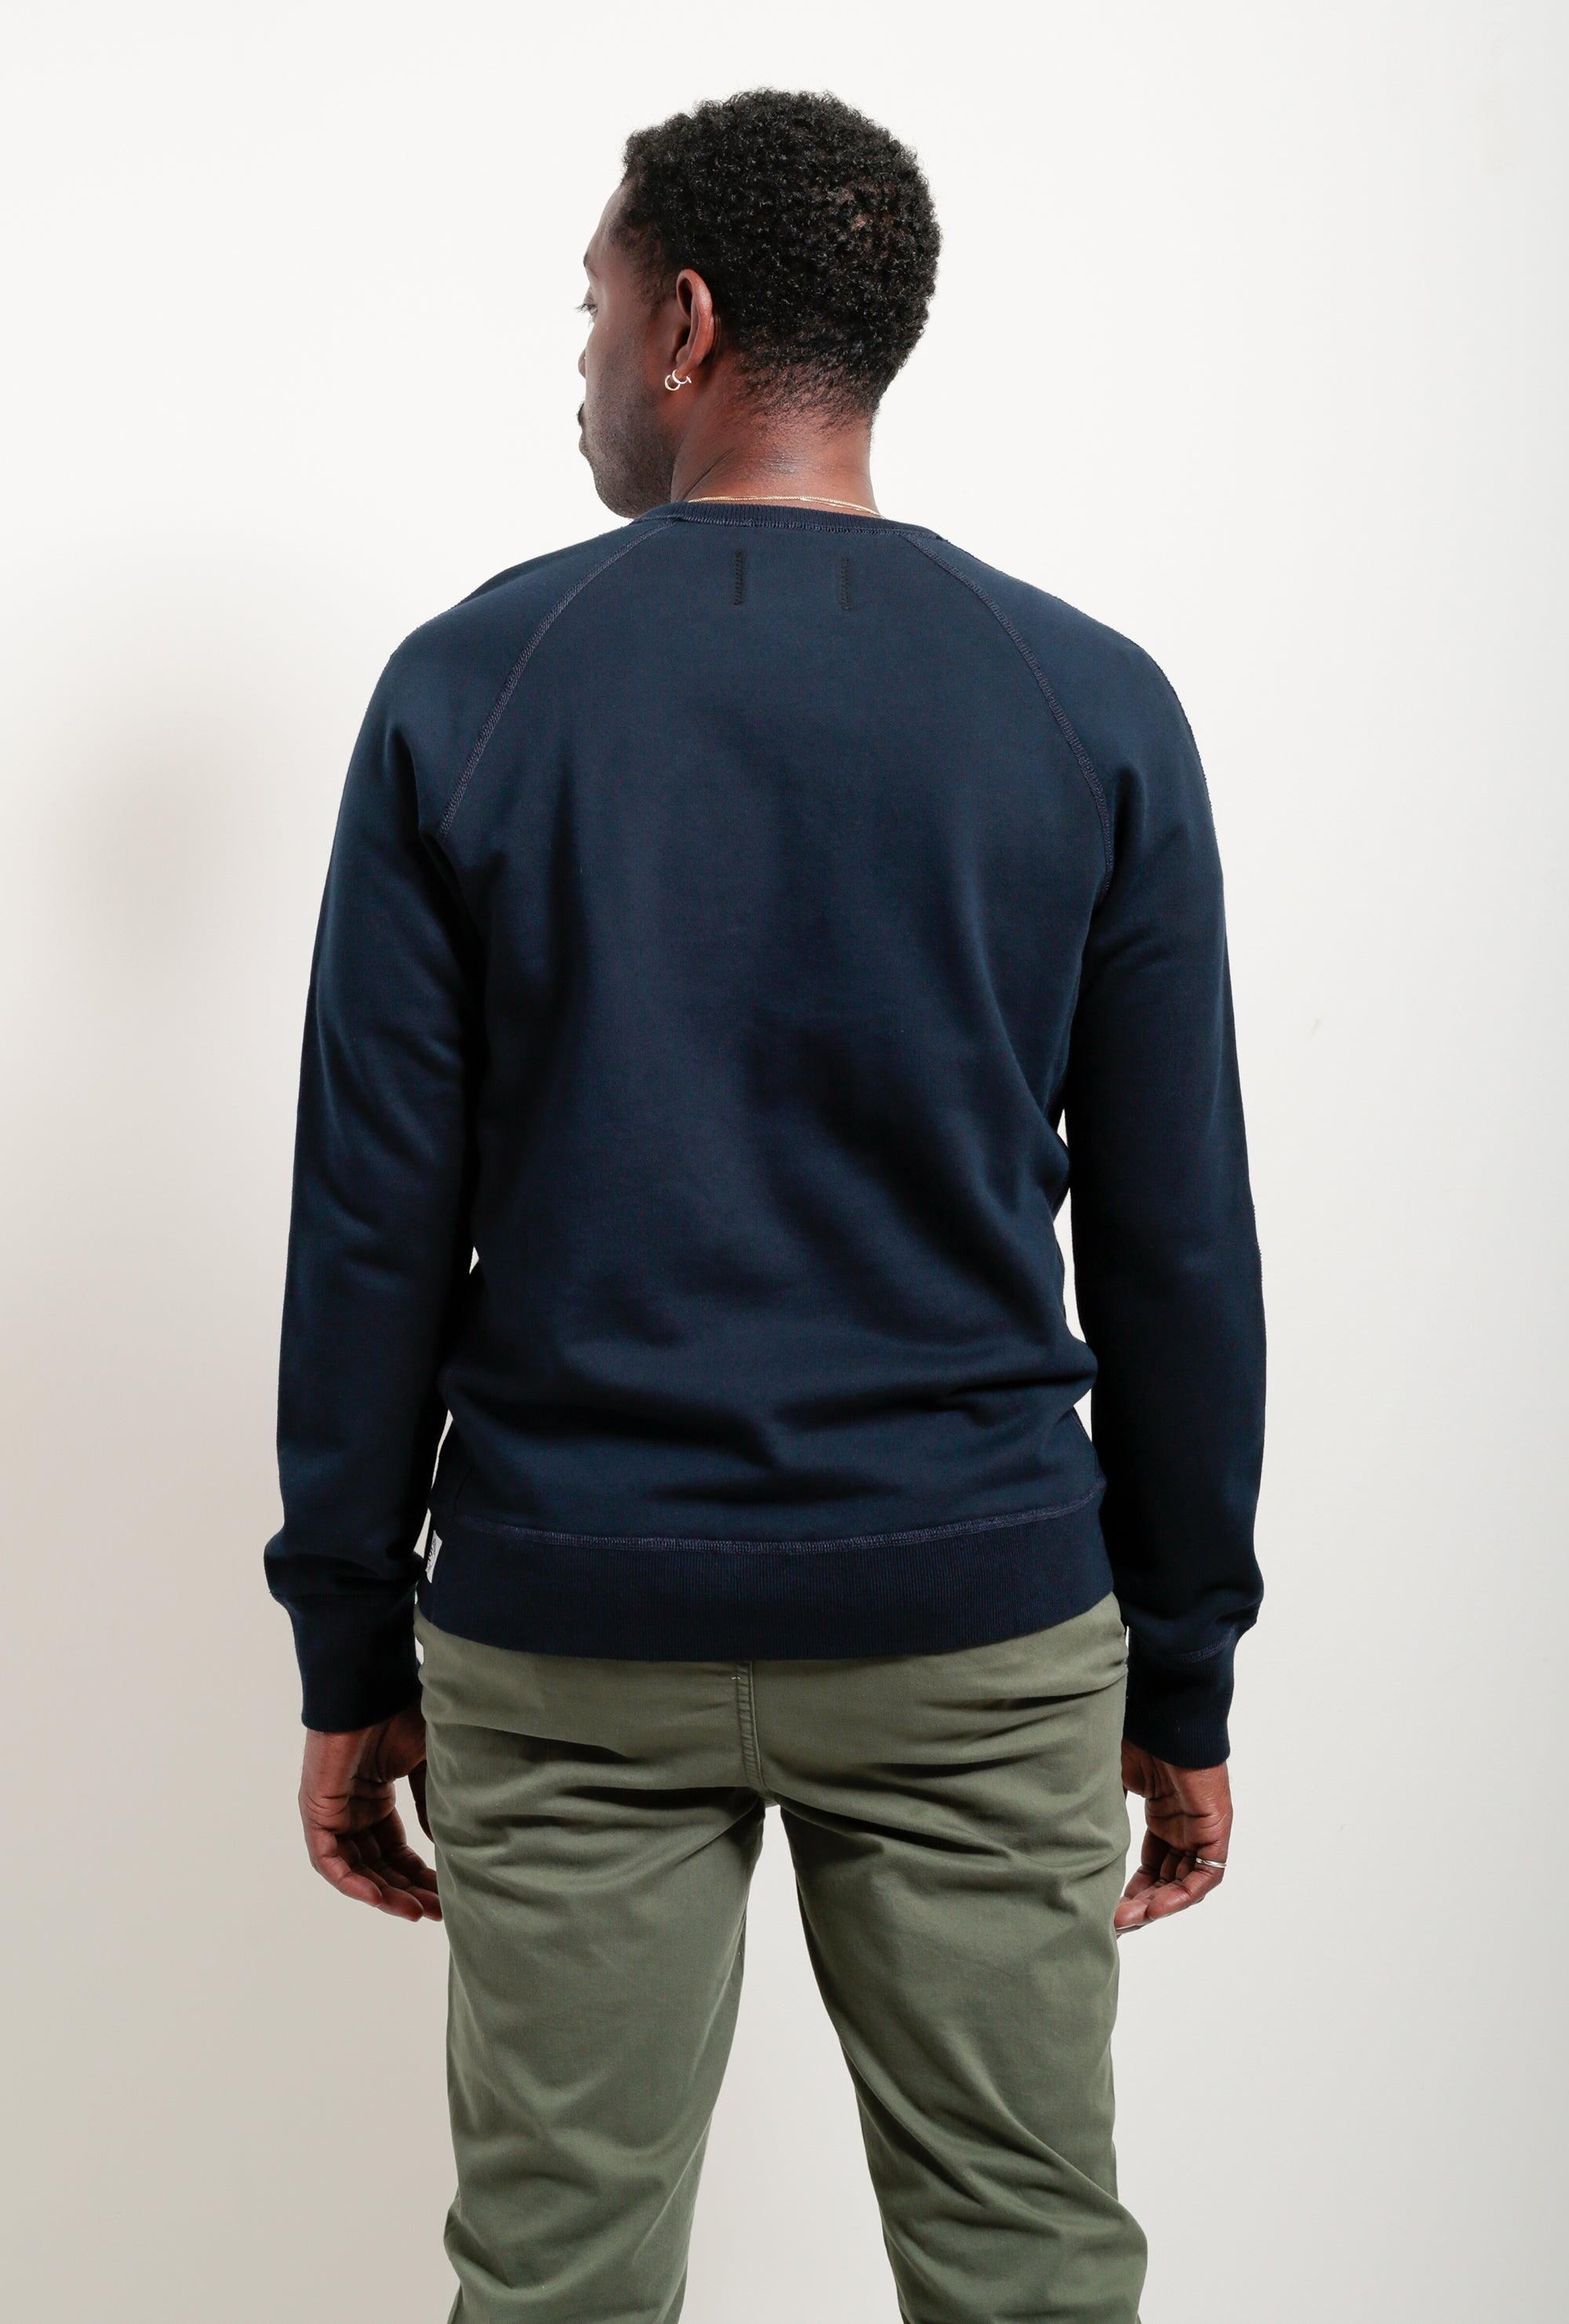 L/S Crew Midweight Sweater